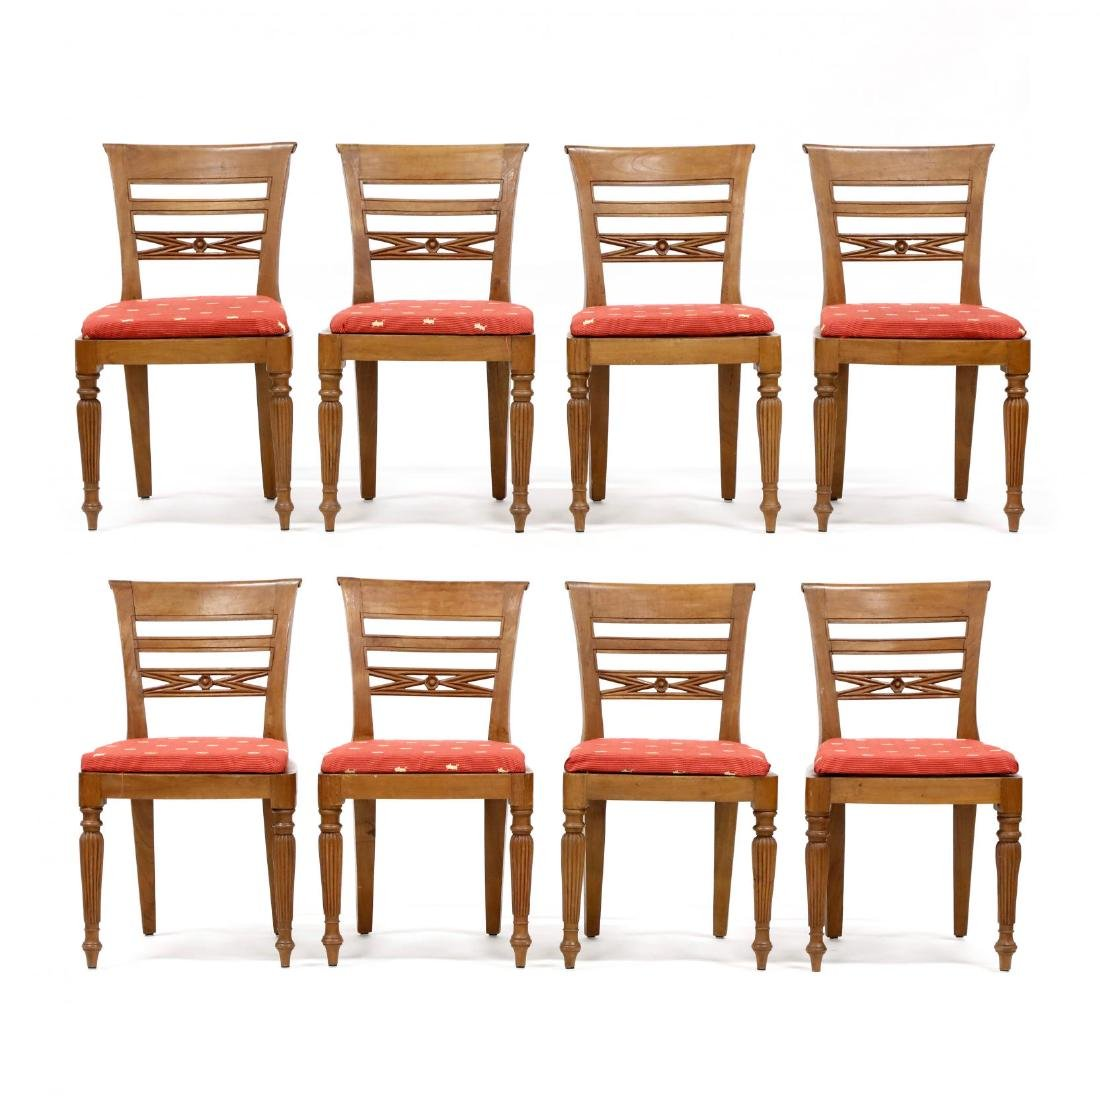 Set of Eight Teak Regency Style Dining Chairs